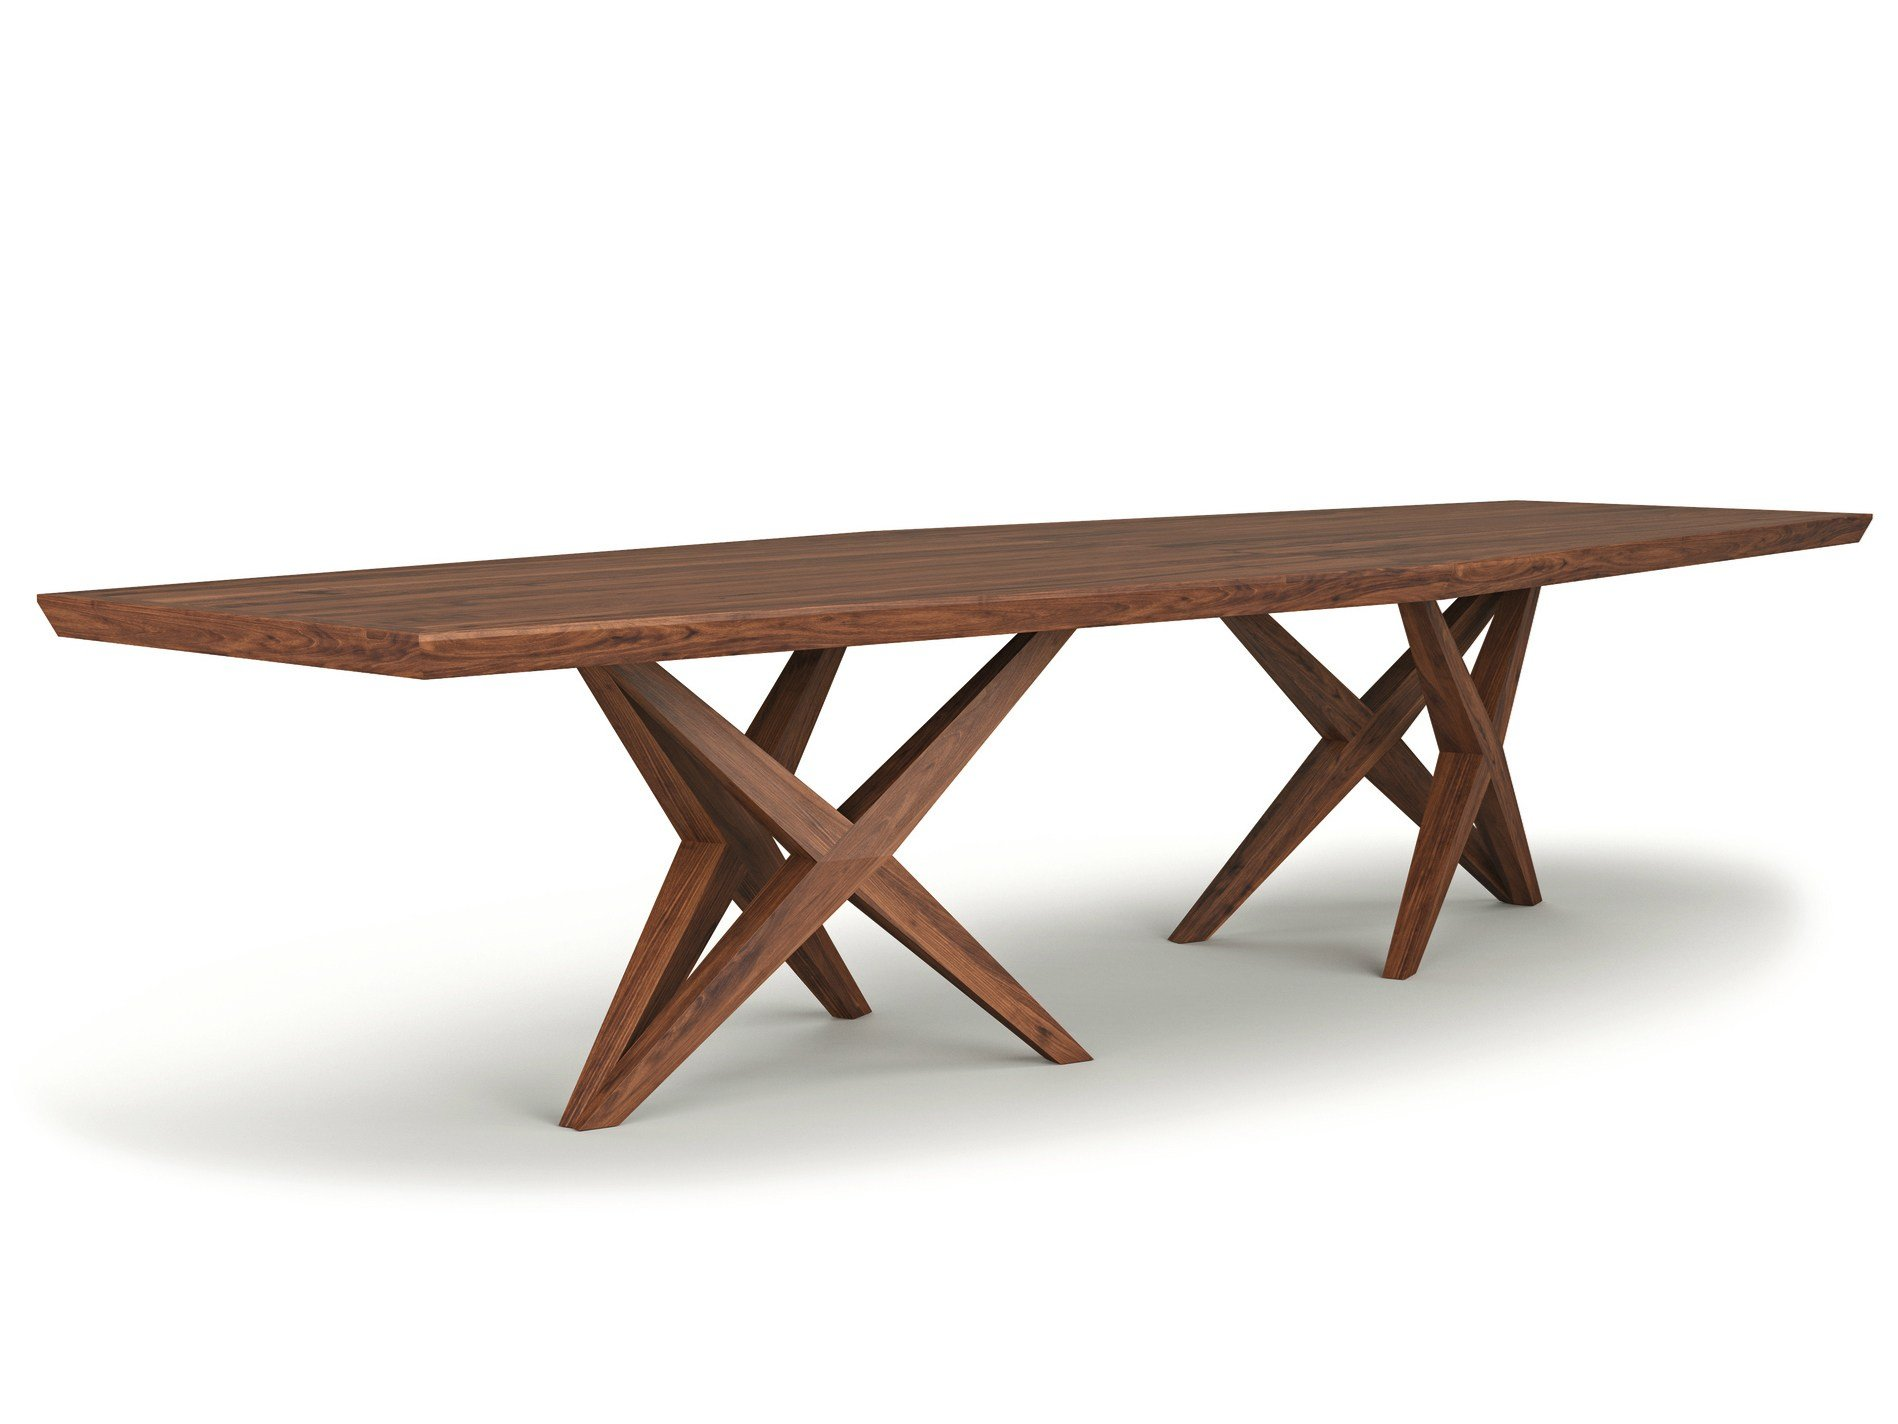 Rectangular solid wood table vitox by belfakto for Solidworks design table zoom